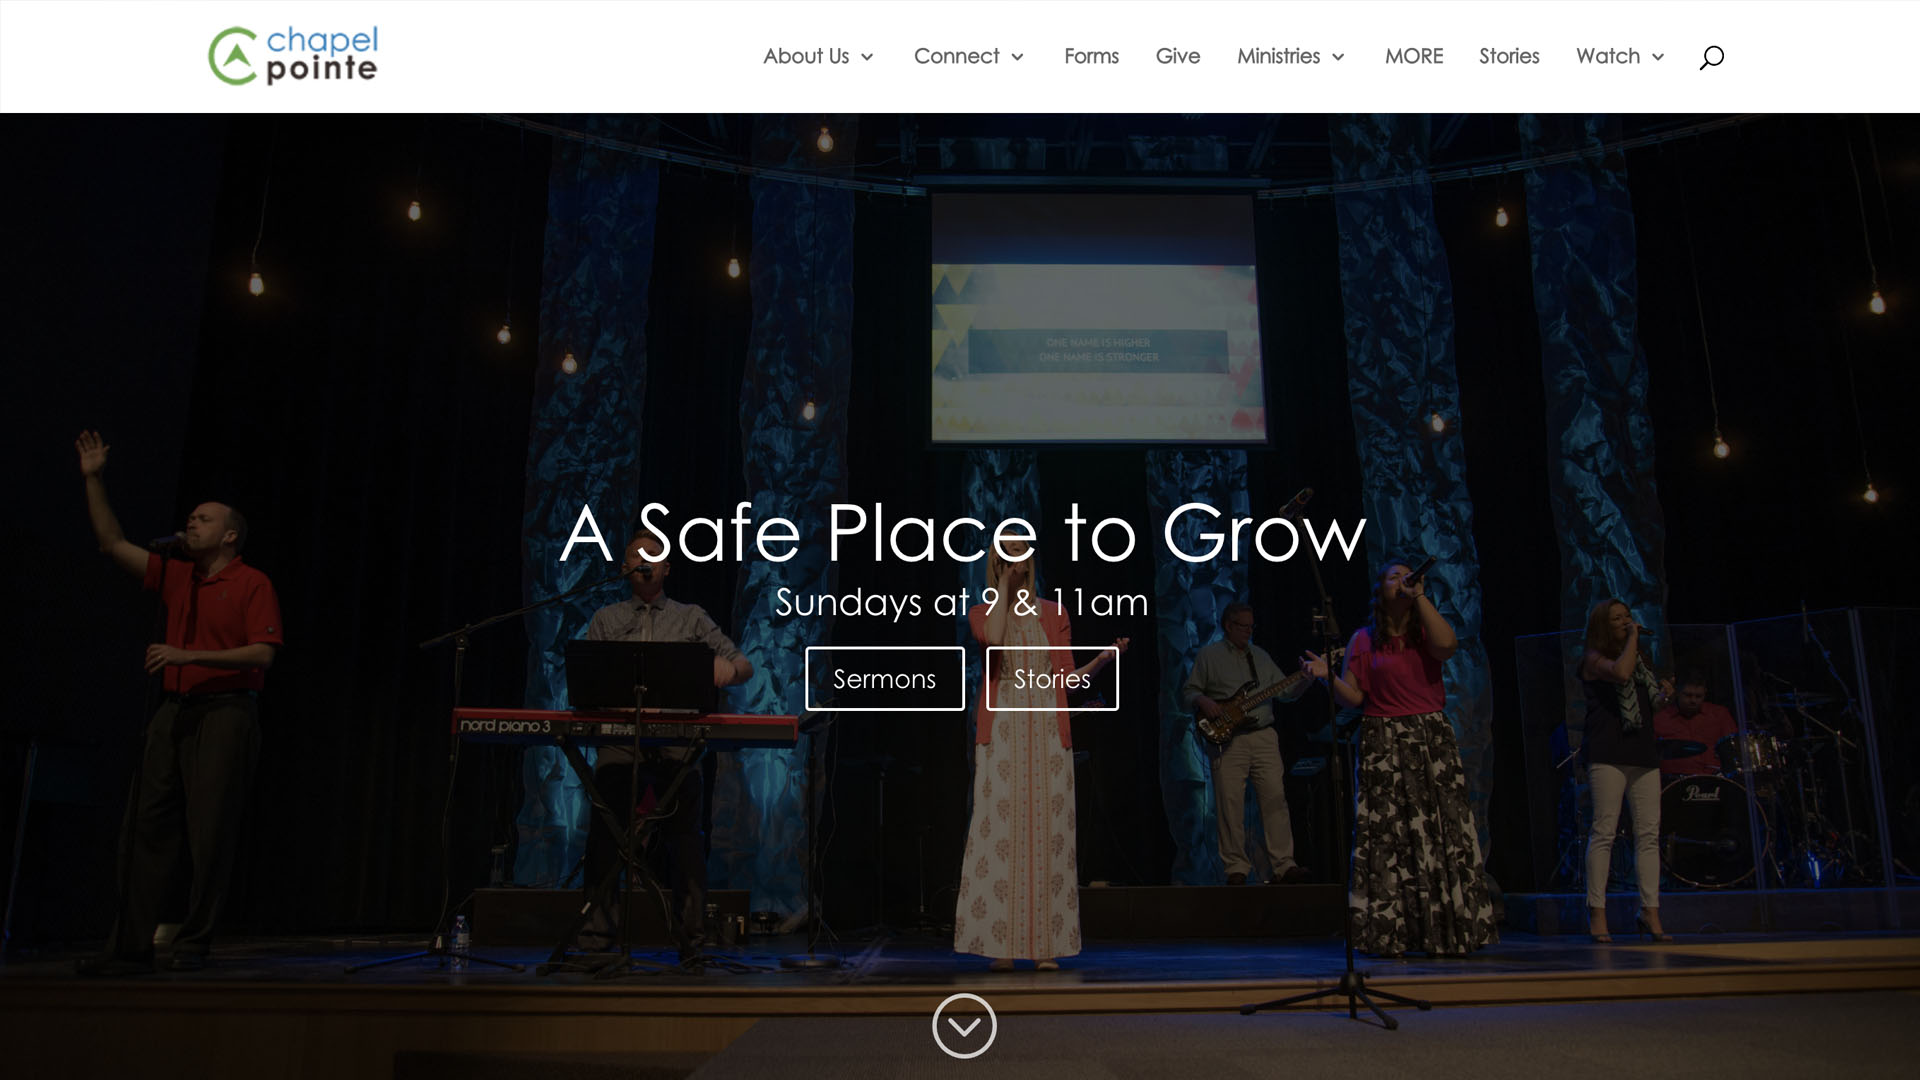 Church Websites Example - Chapel Pointe - https://chapel-pointe.org/